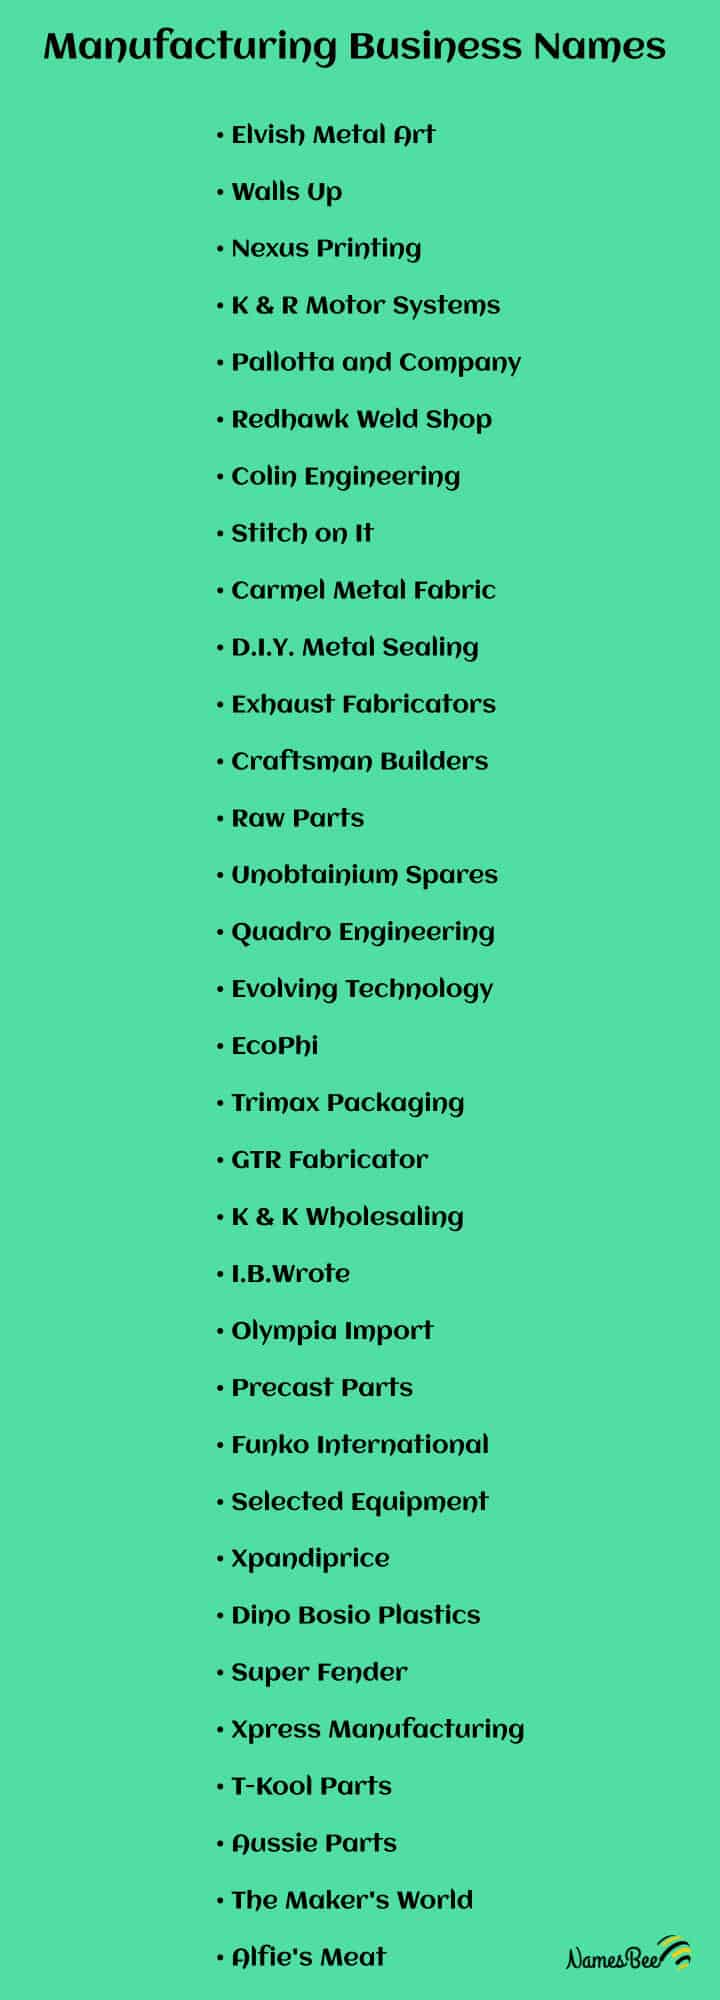 manufacturing company names list